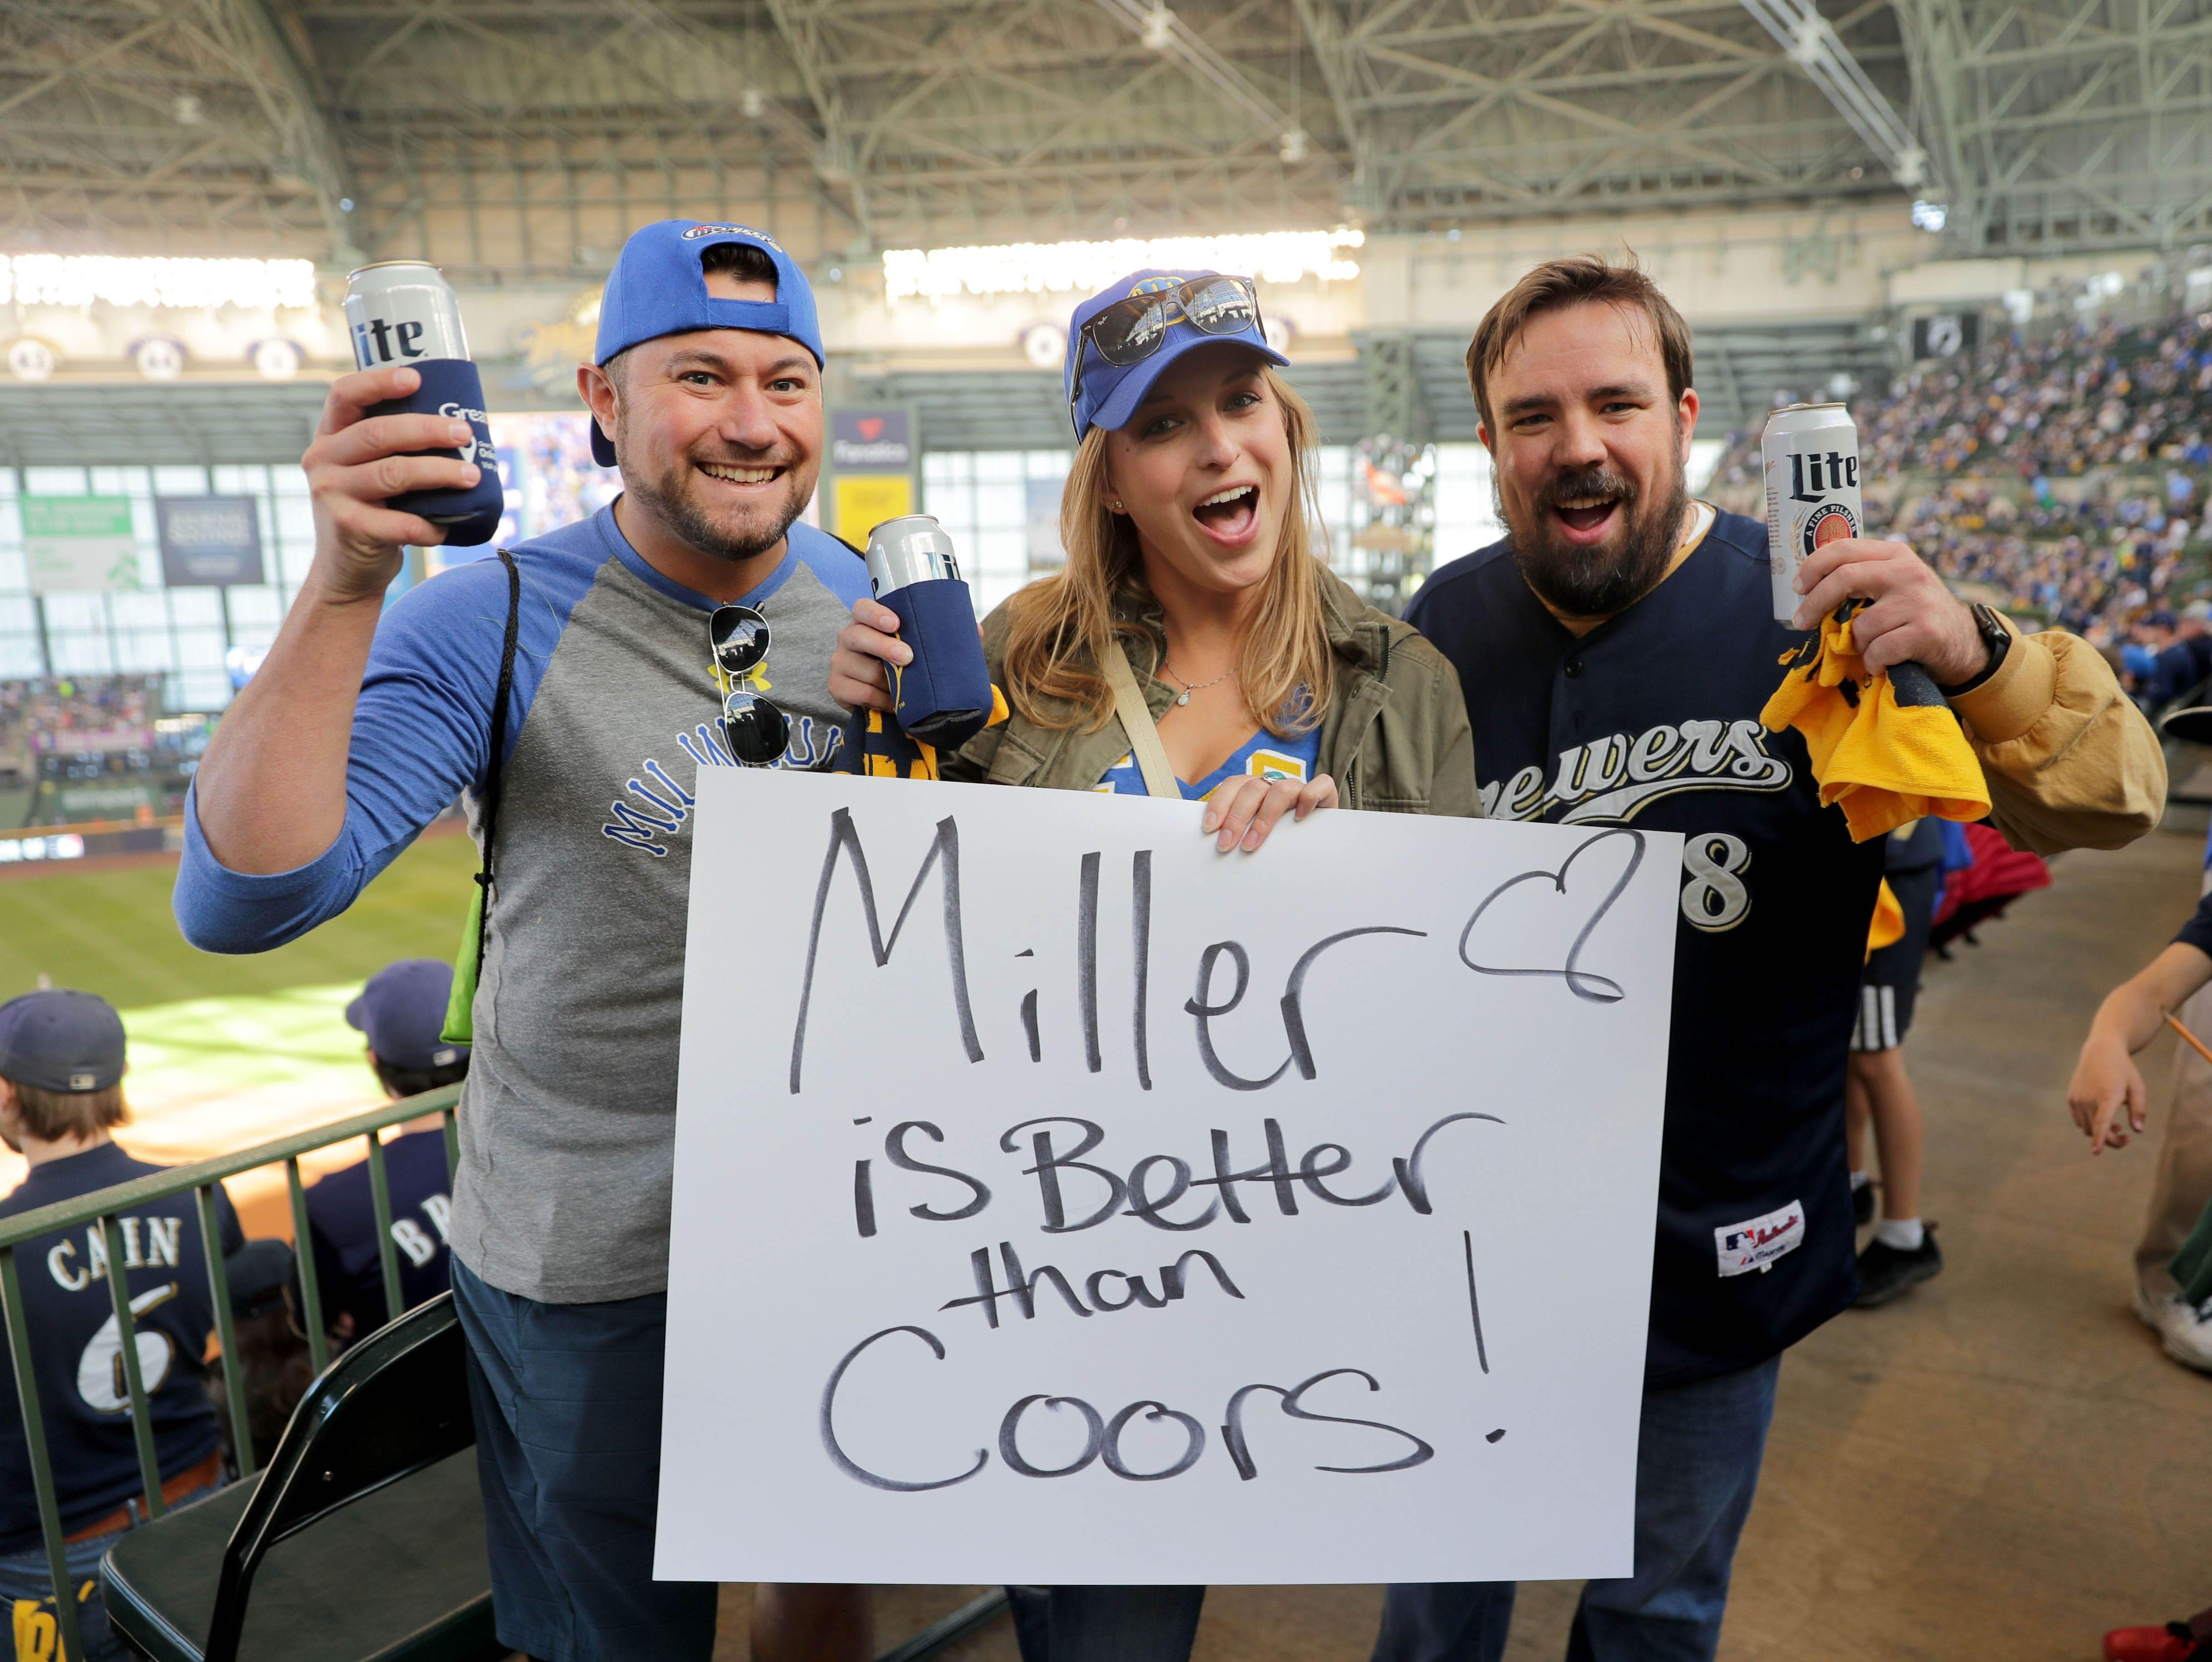 NLDS Game 1: Oct 4, 2018; Brewers fans (from left to right) Kevin Heidorn, Ashley Poull and Kyle Kasbohm hold up a sign.